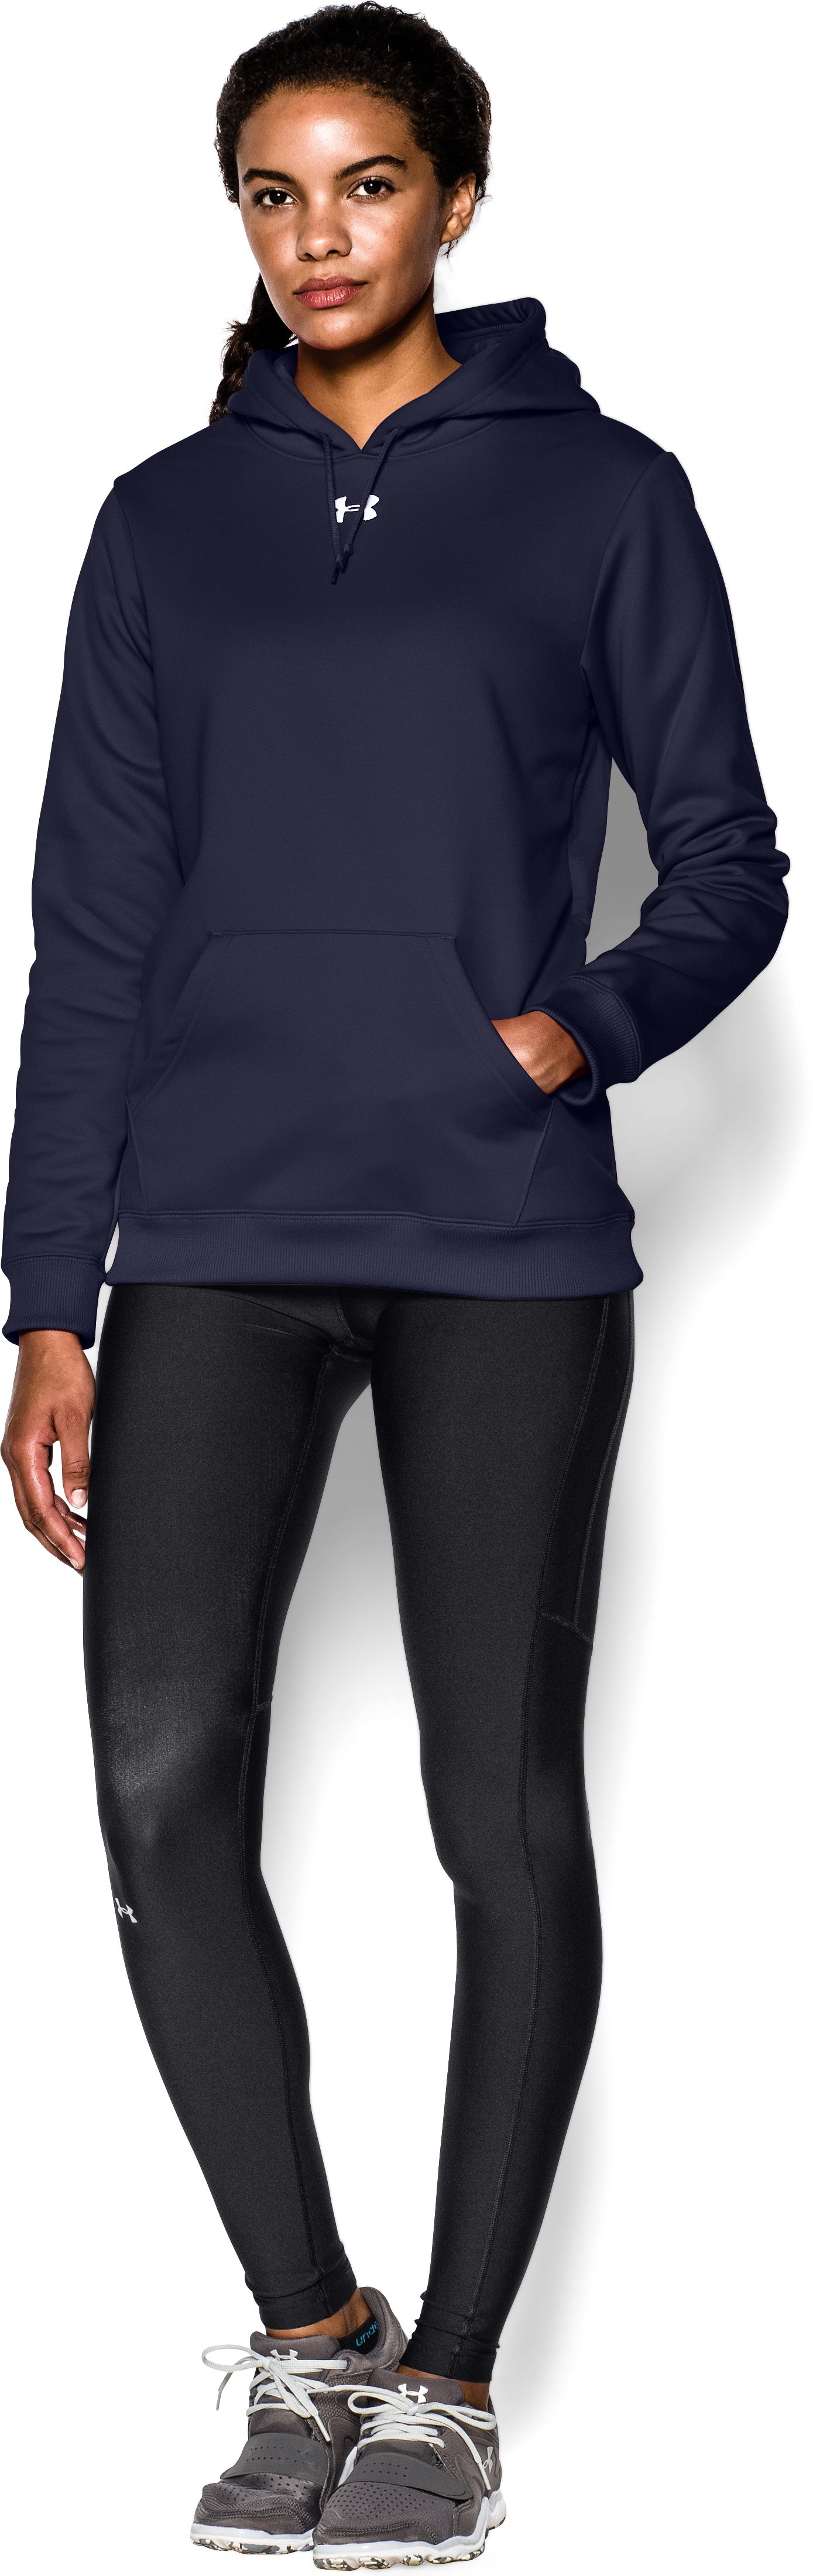 Women's Armour® Fleece Team Hoodie, Midnight Navy, zoomed image